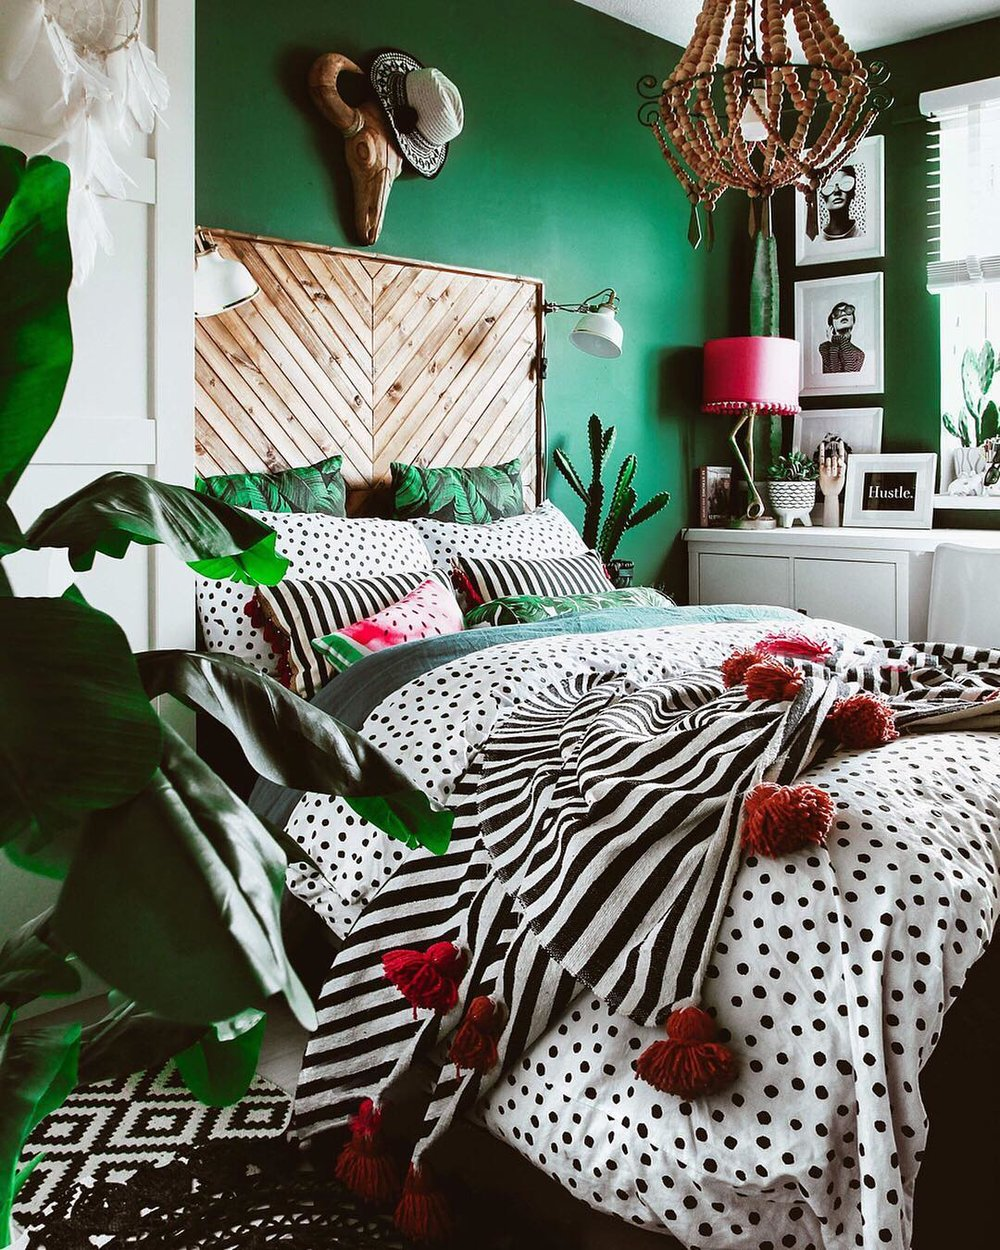 We're in LOVE with Pati's rich green wall